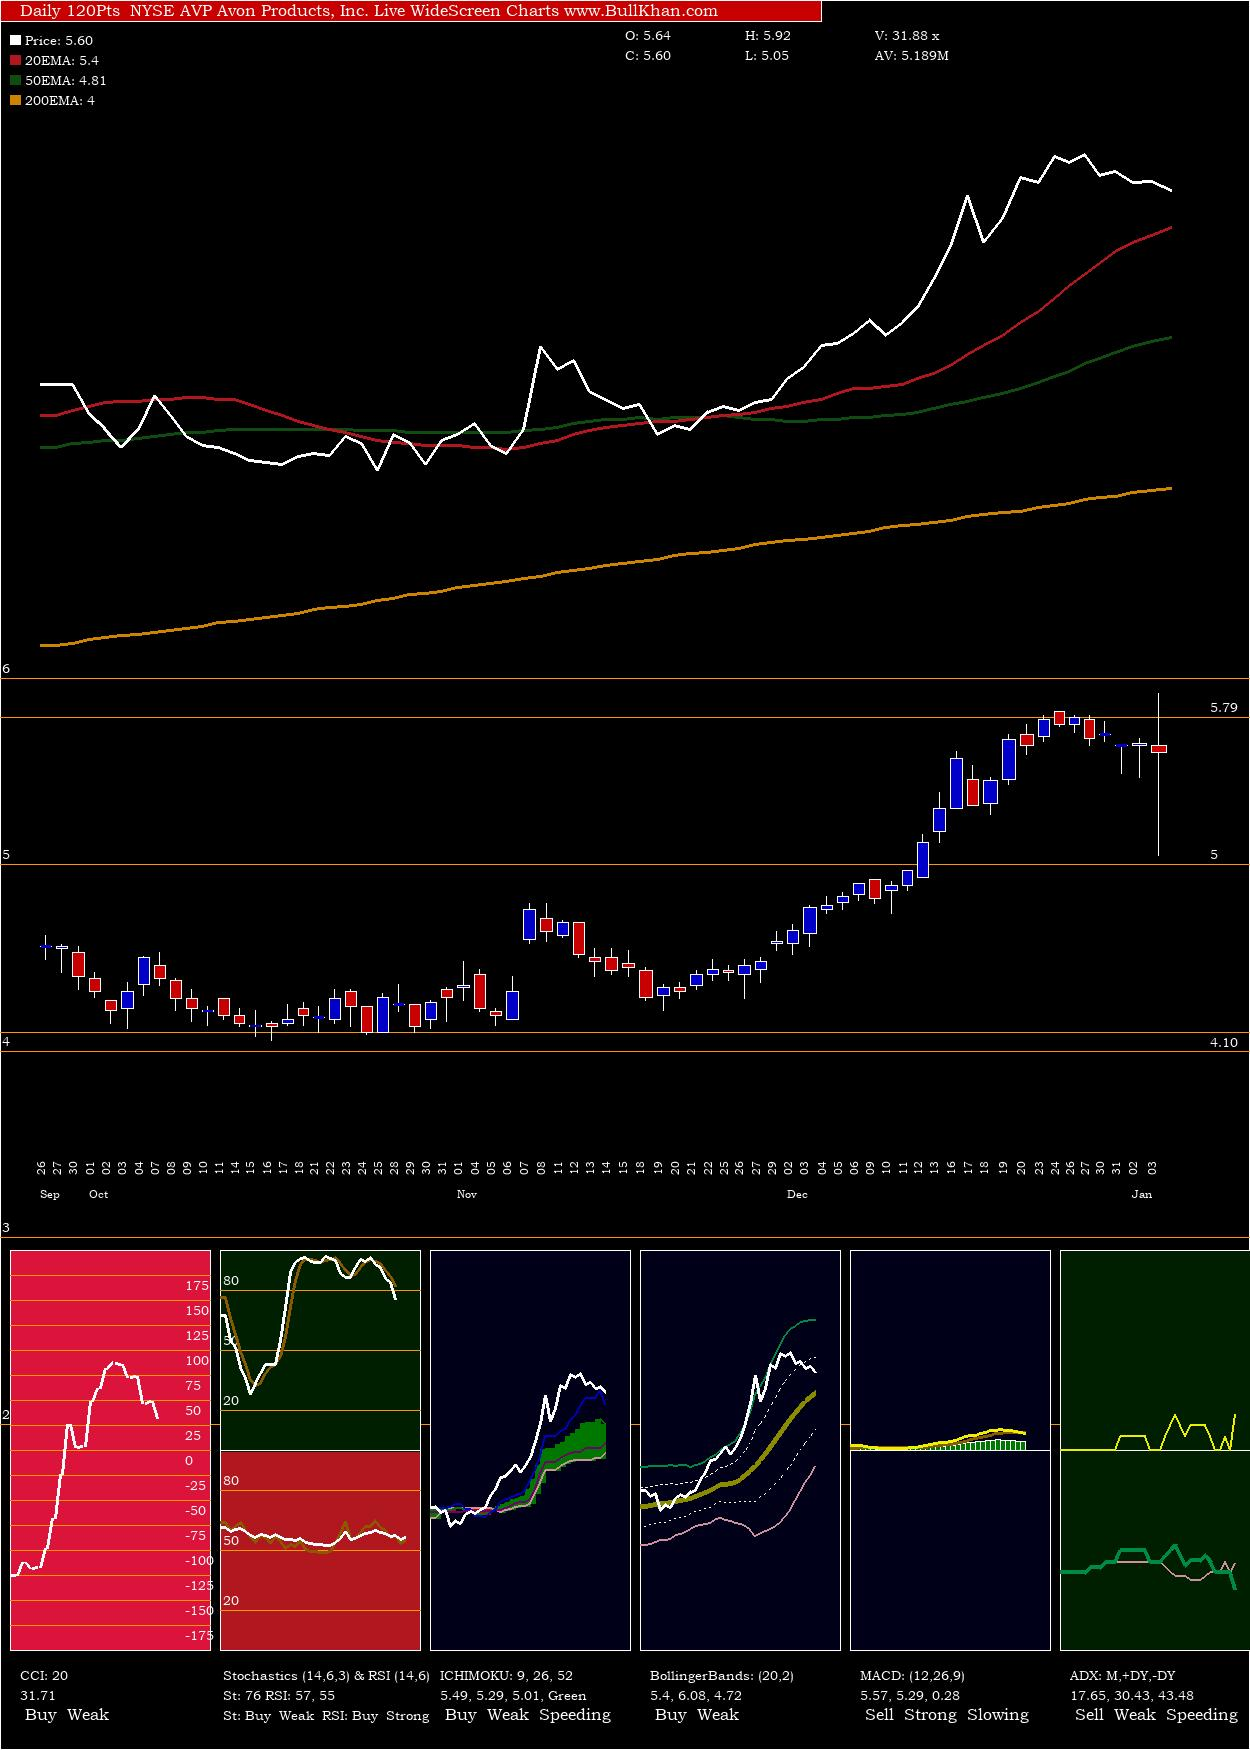 Avon Products charts and indicators